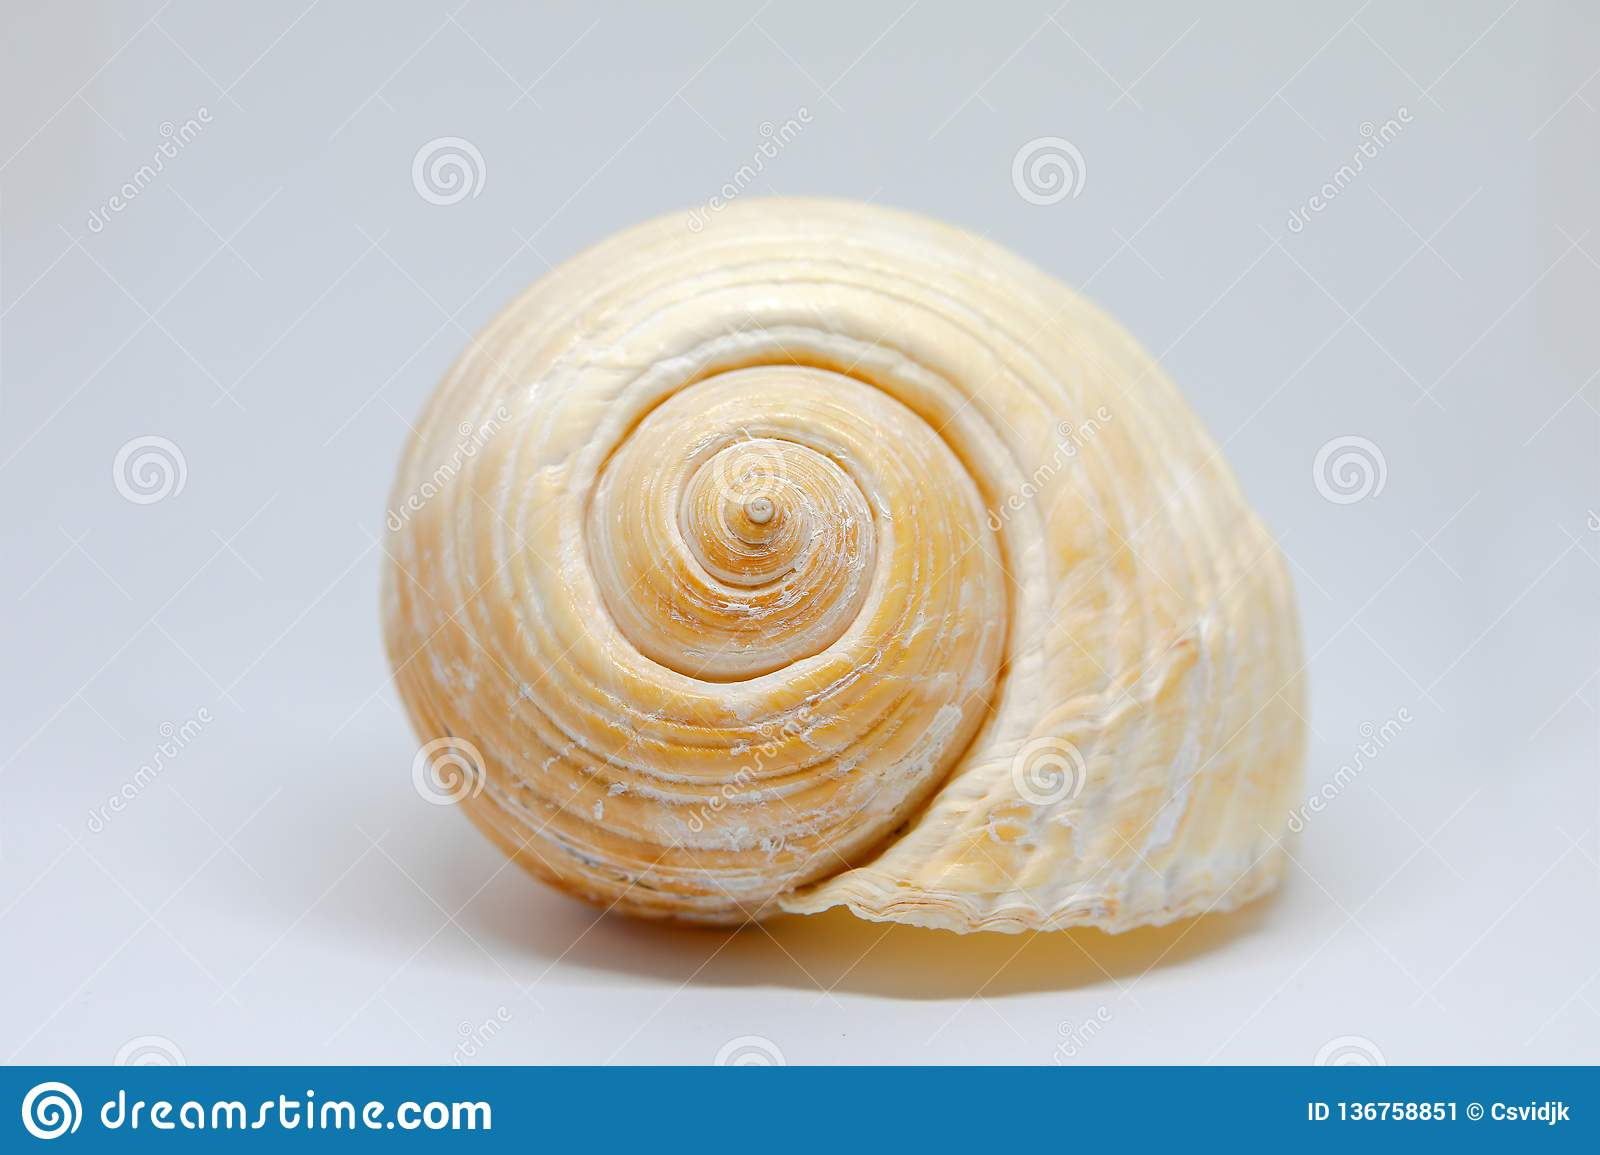 Beautiful seashell close up + transparent background, png